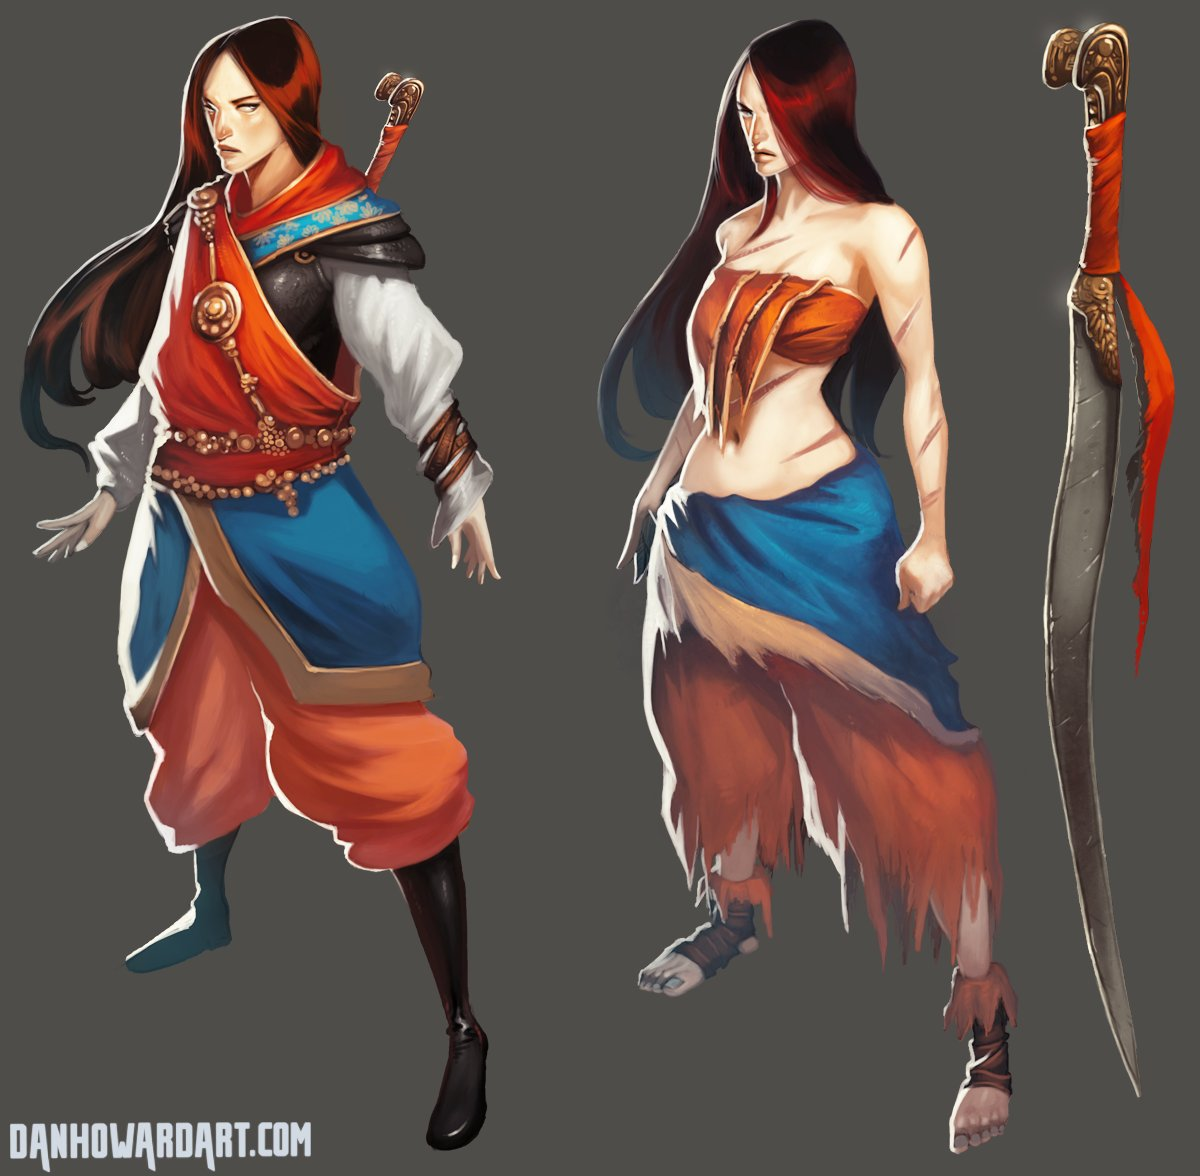 some #flashback illustrations as freelancing continues.  #art #characterdesign #digitalart #conceptart #scifi #fantasy<br>http://pic.twitter.com/W2r3FhOl97